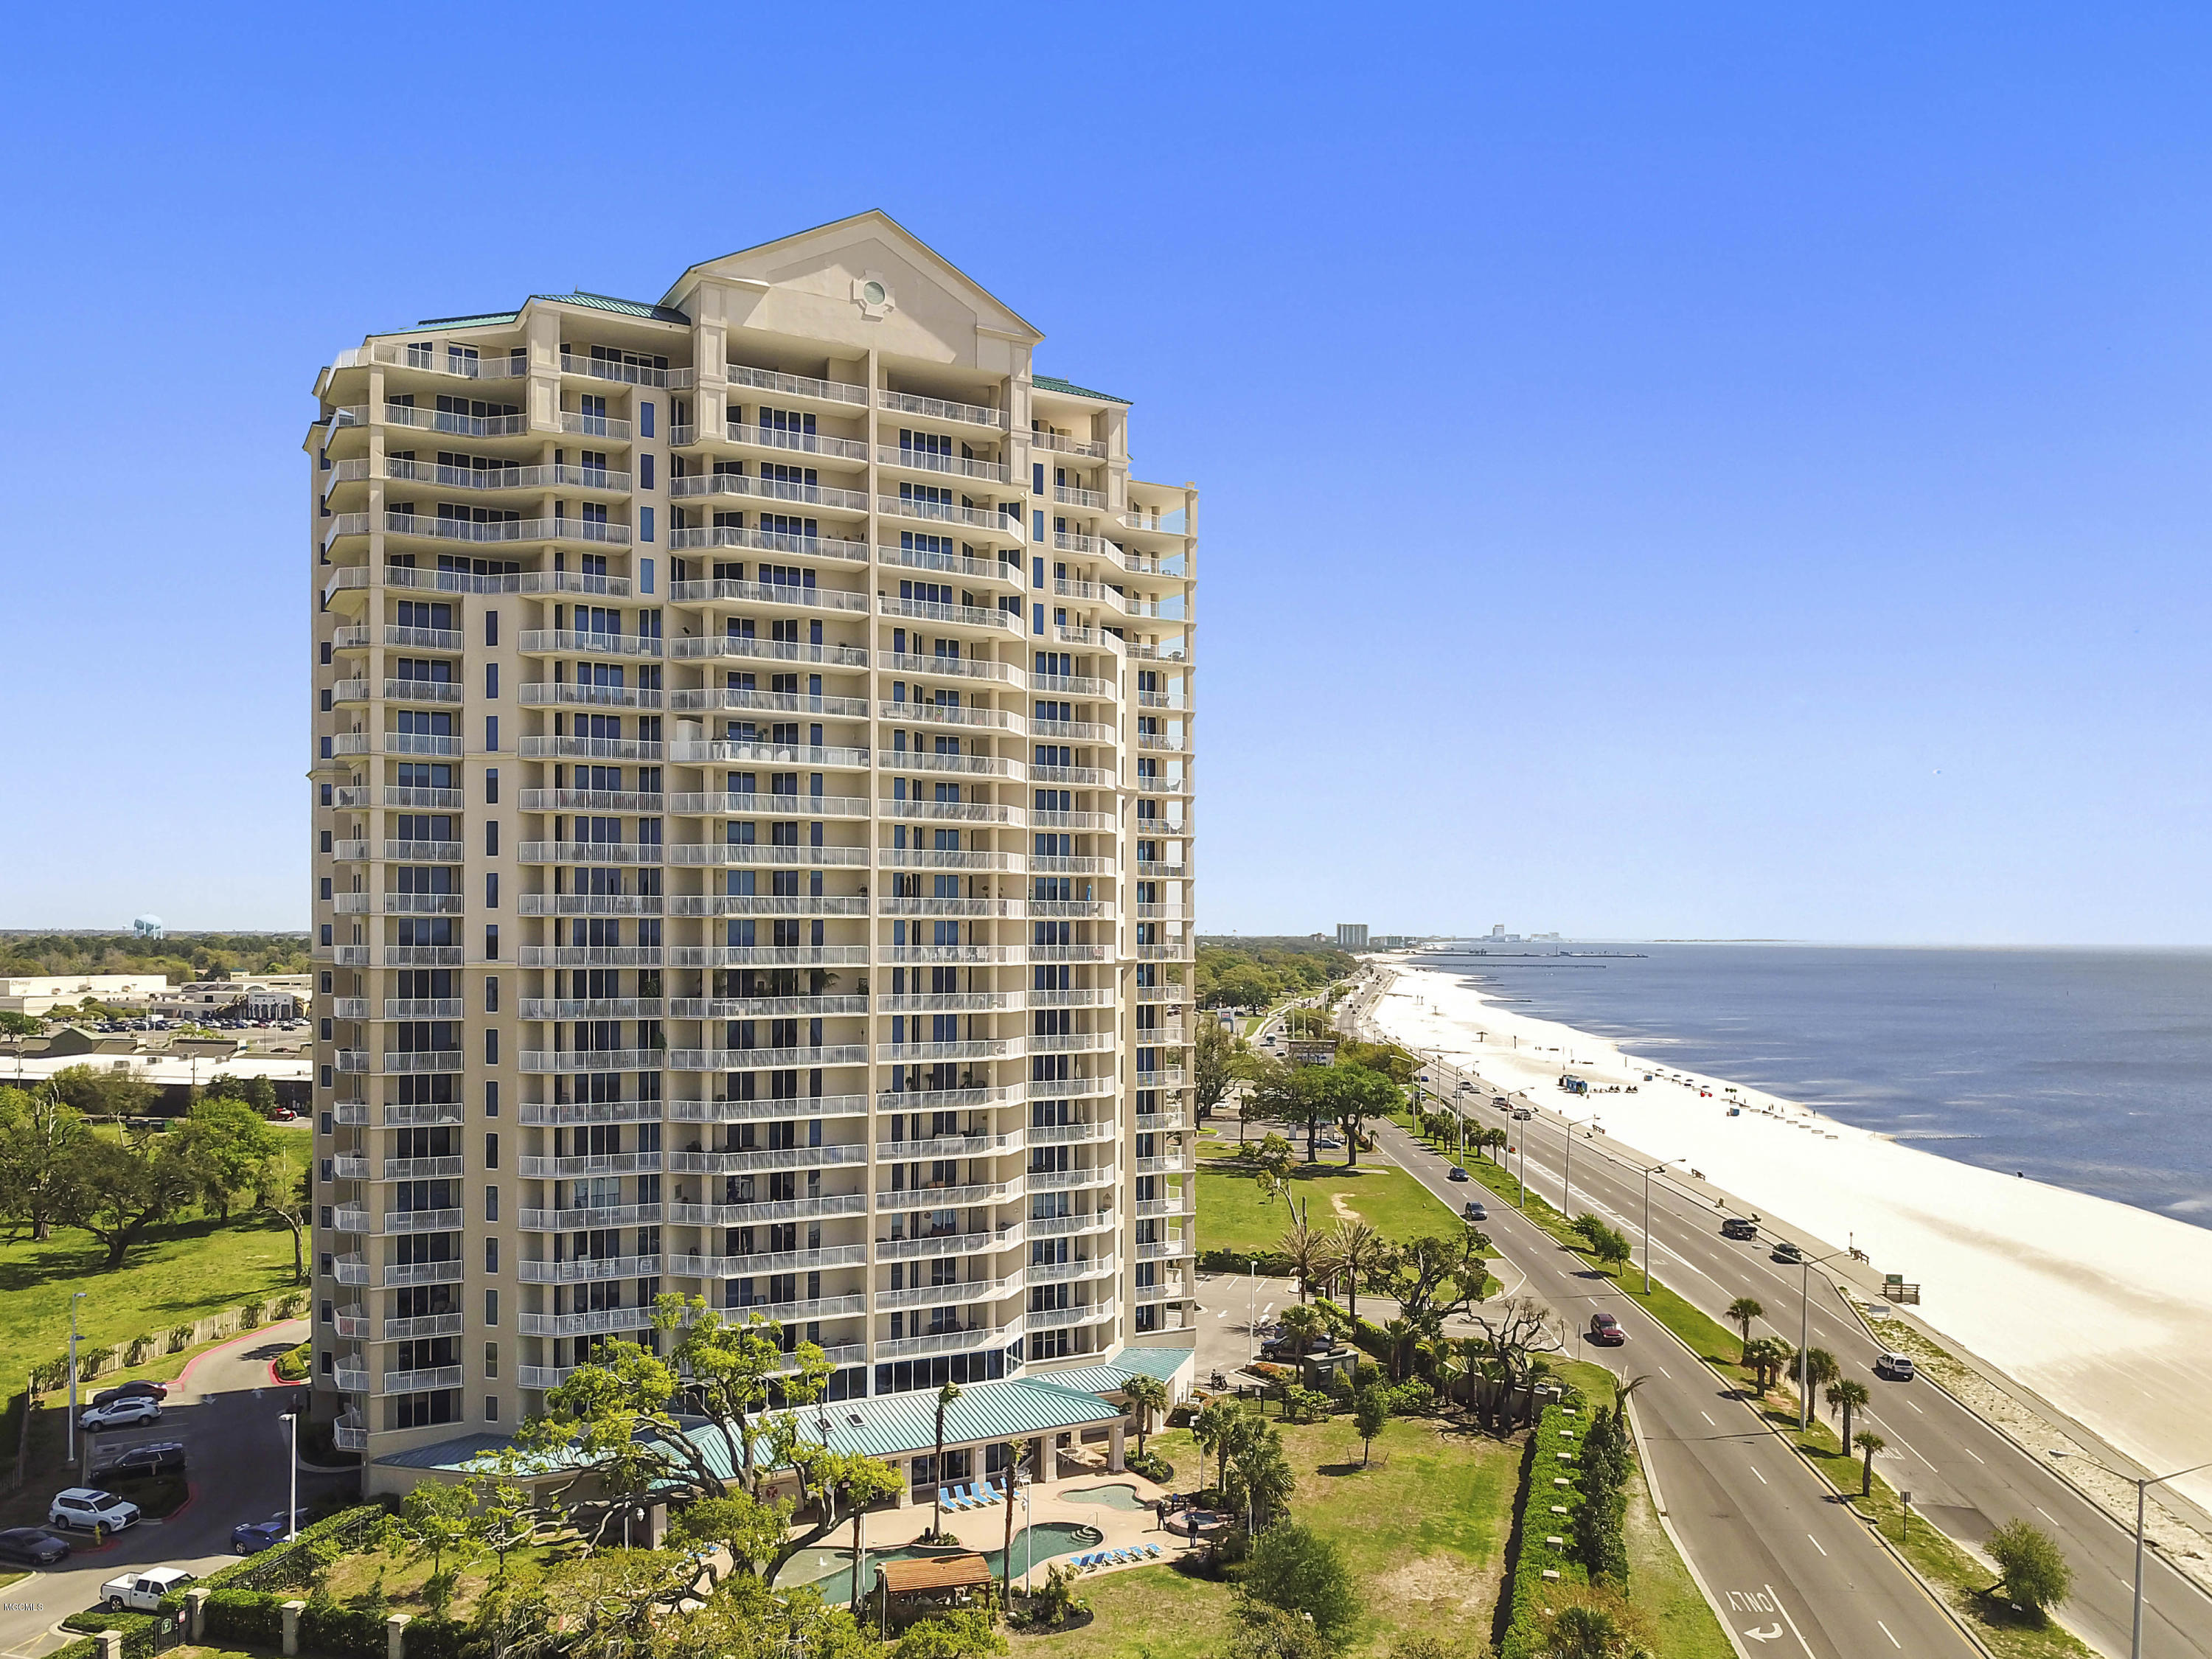 Condos For Sale Search 100 Listings Updated Daily